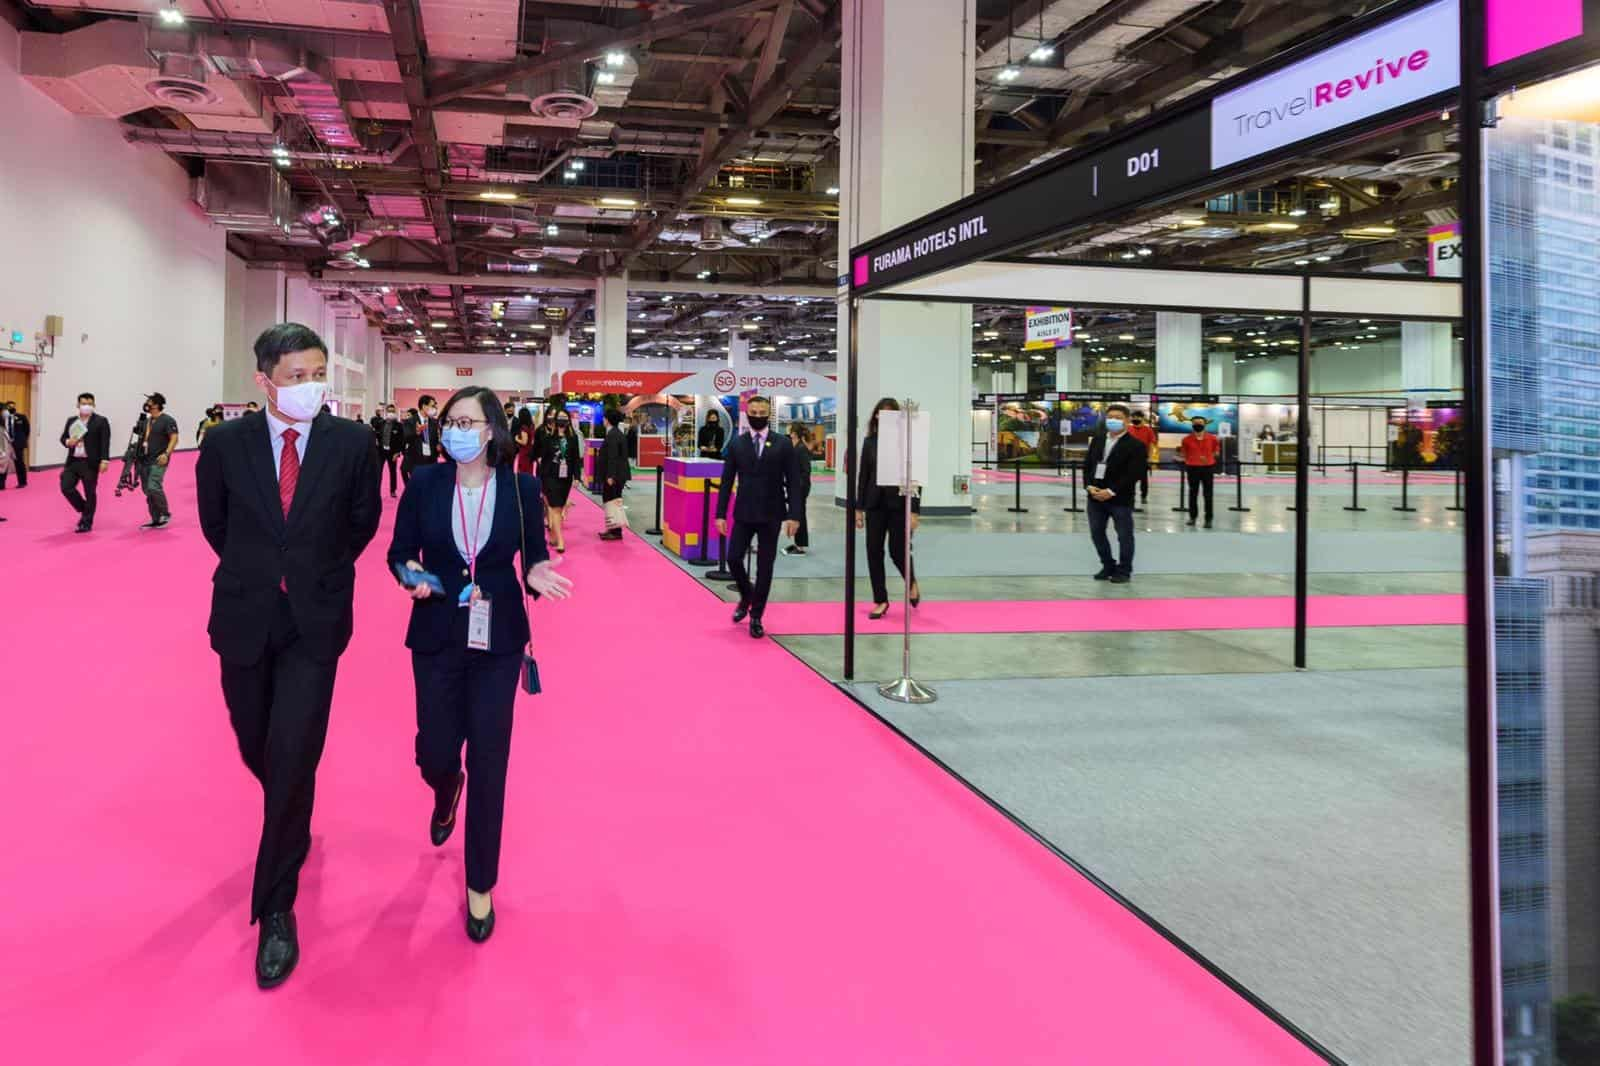 travel, Singapore pilots ways to reinvent global travel and activities like MICE